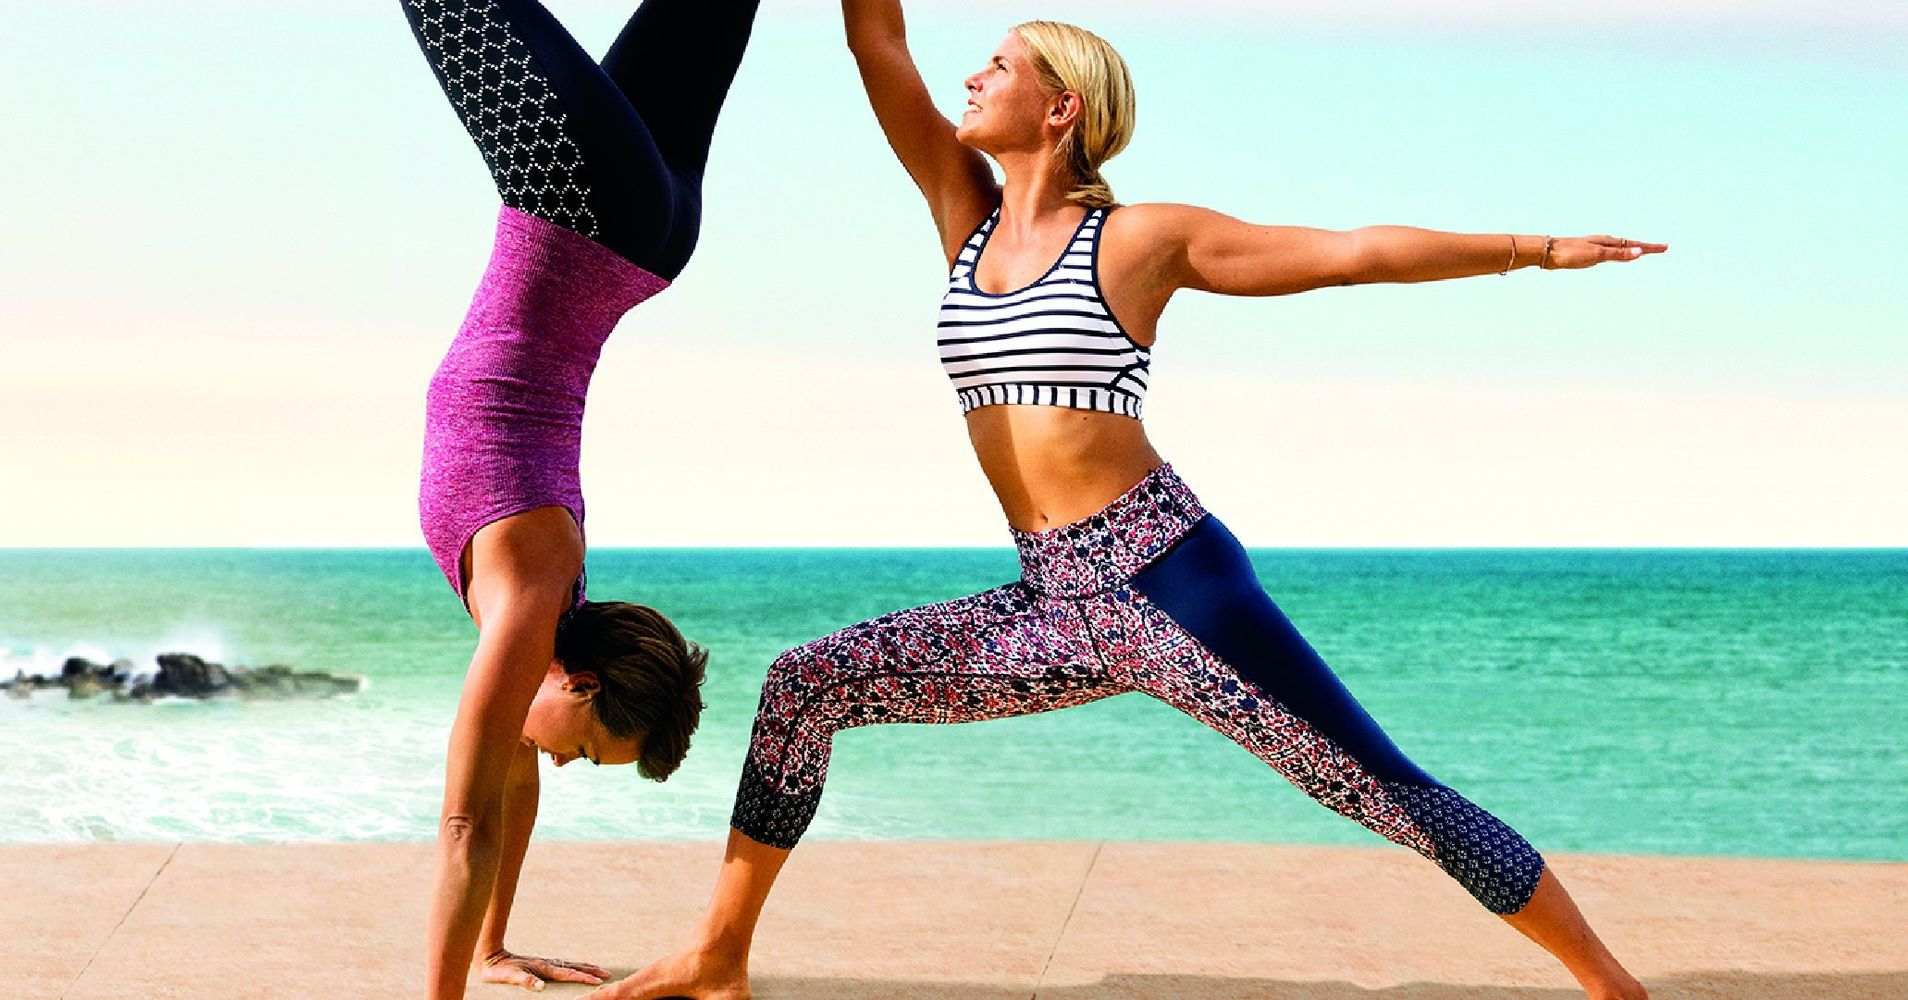 39c443fe5ac7d Athleta s Latest Campaign Is About Way More Than Workout Gear ...